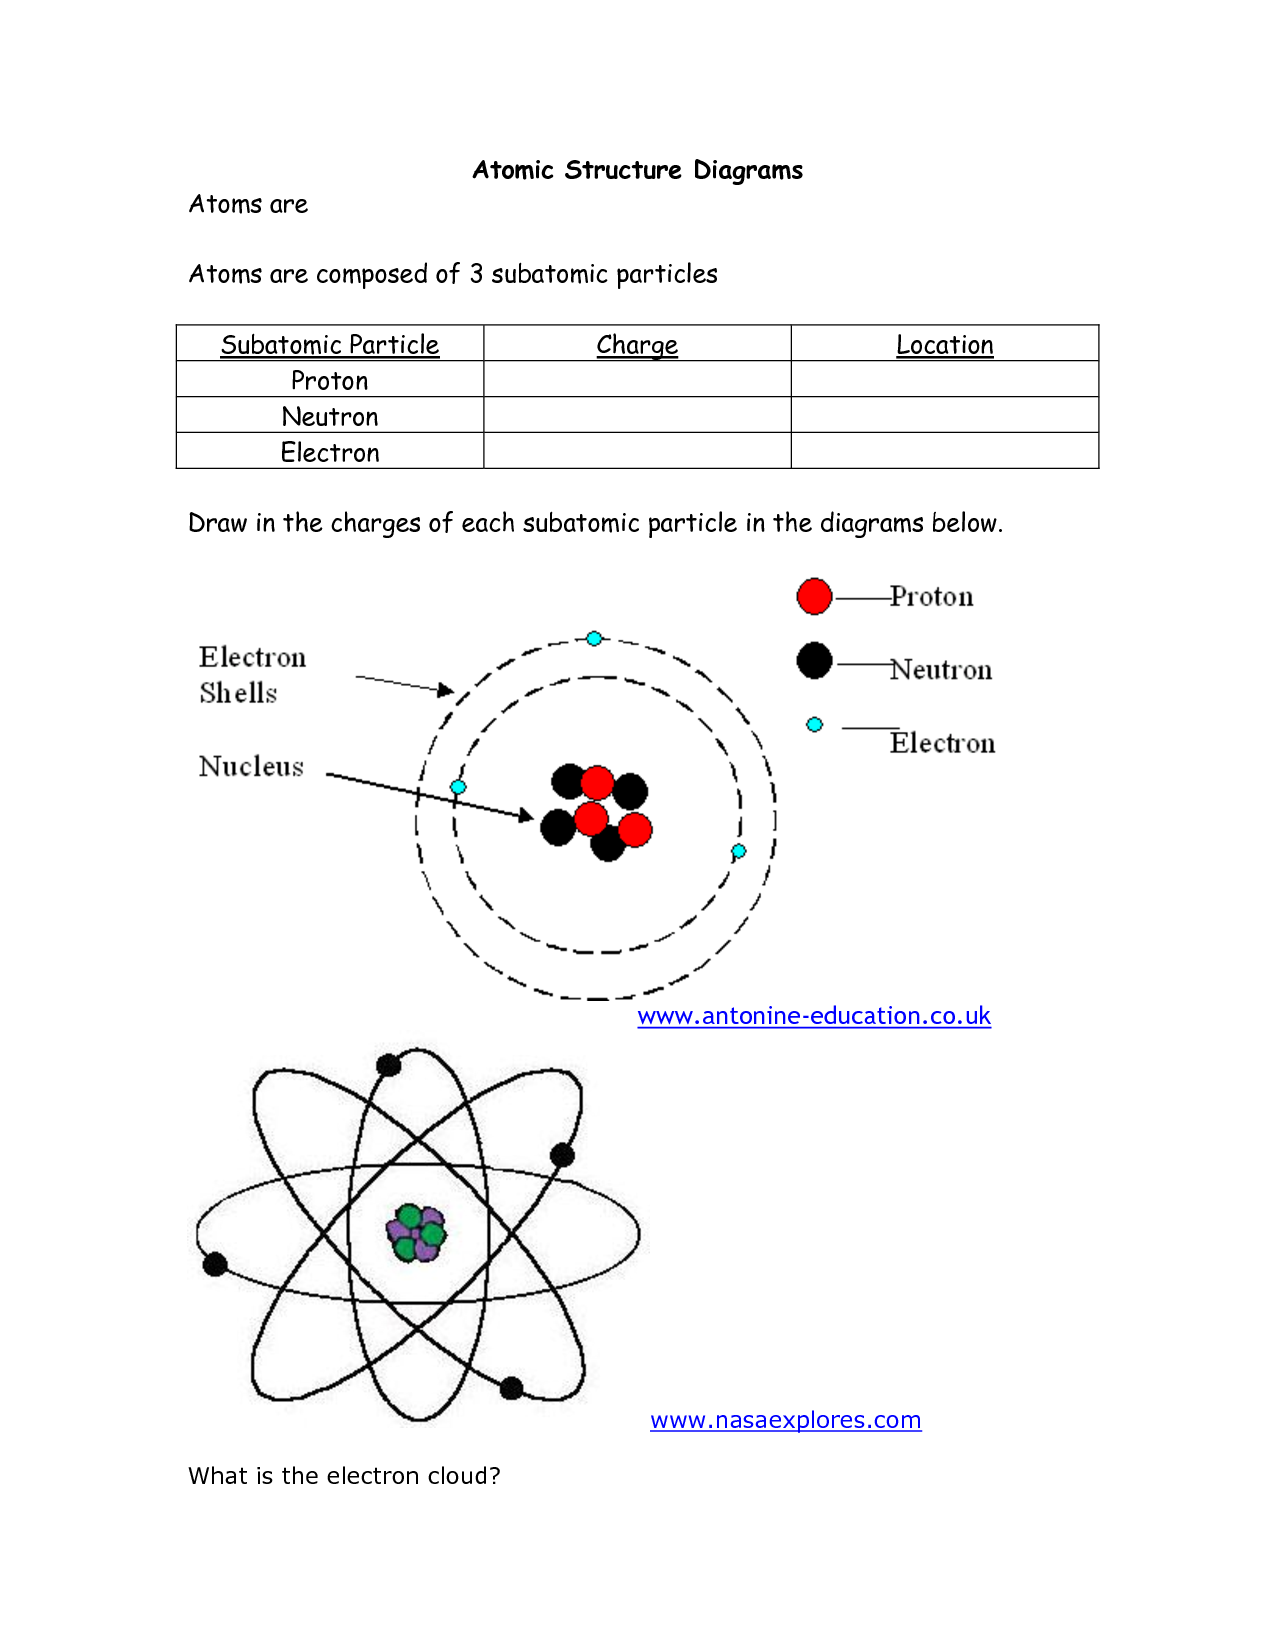 hight resolution of atomic structure diagram worksheet atomic structure diagrams atomic structure diagram worksheet atomic structure diagrams